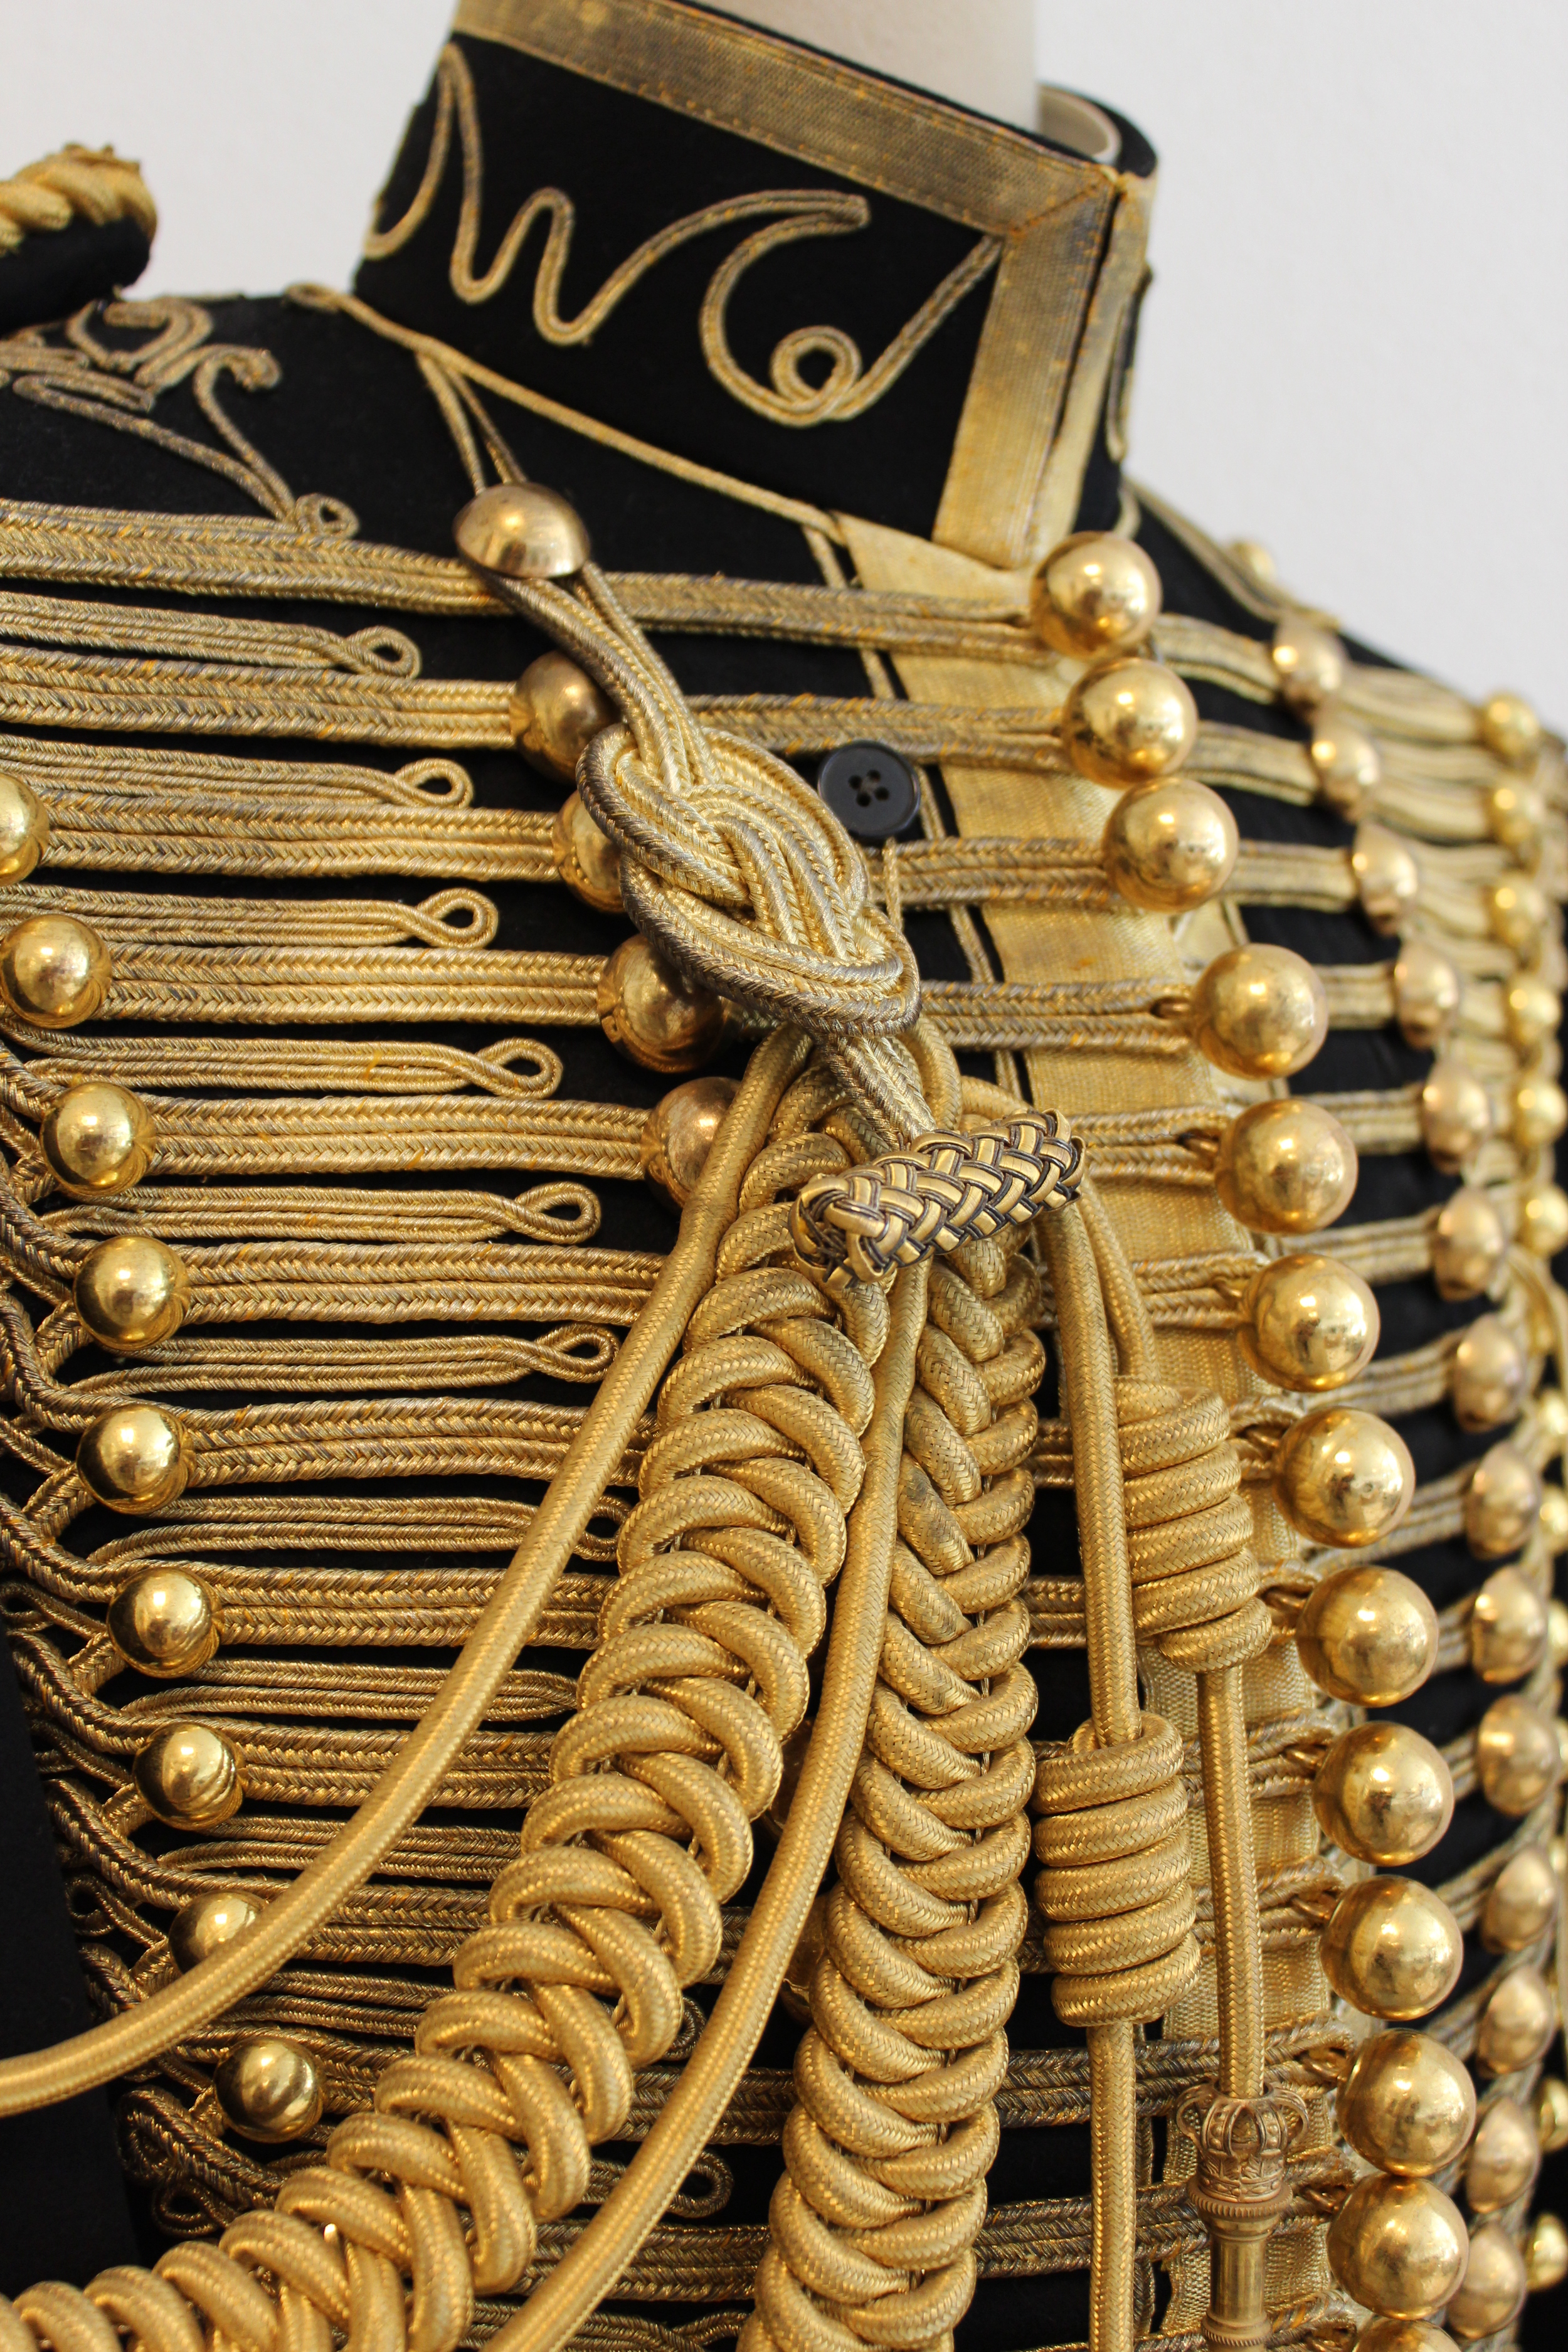 cleaning gold braid on 1937 dolman of HRH Prince Bernhard of The Netherlands